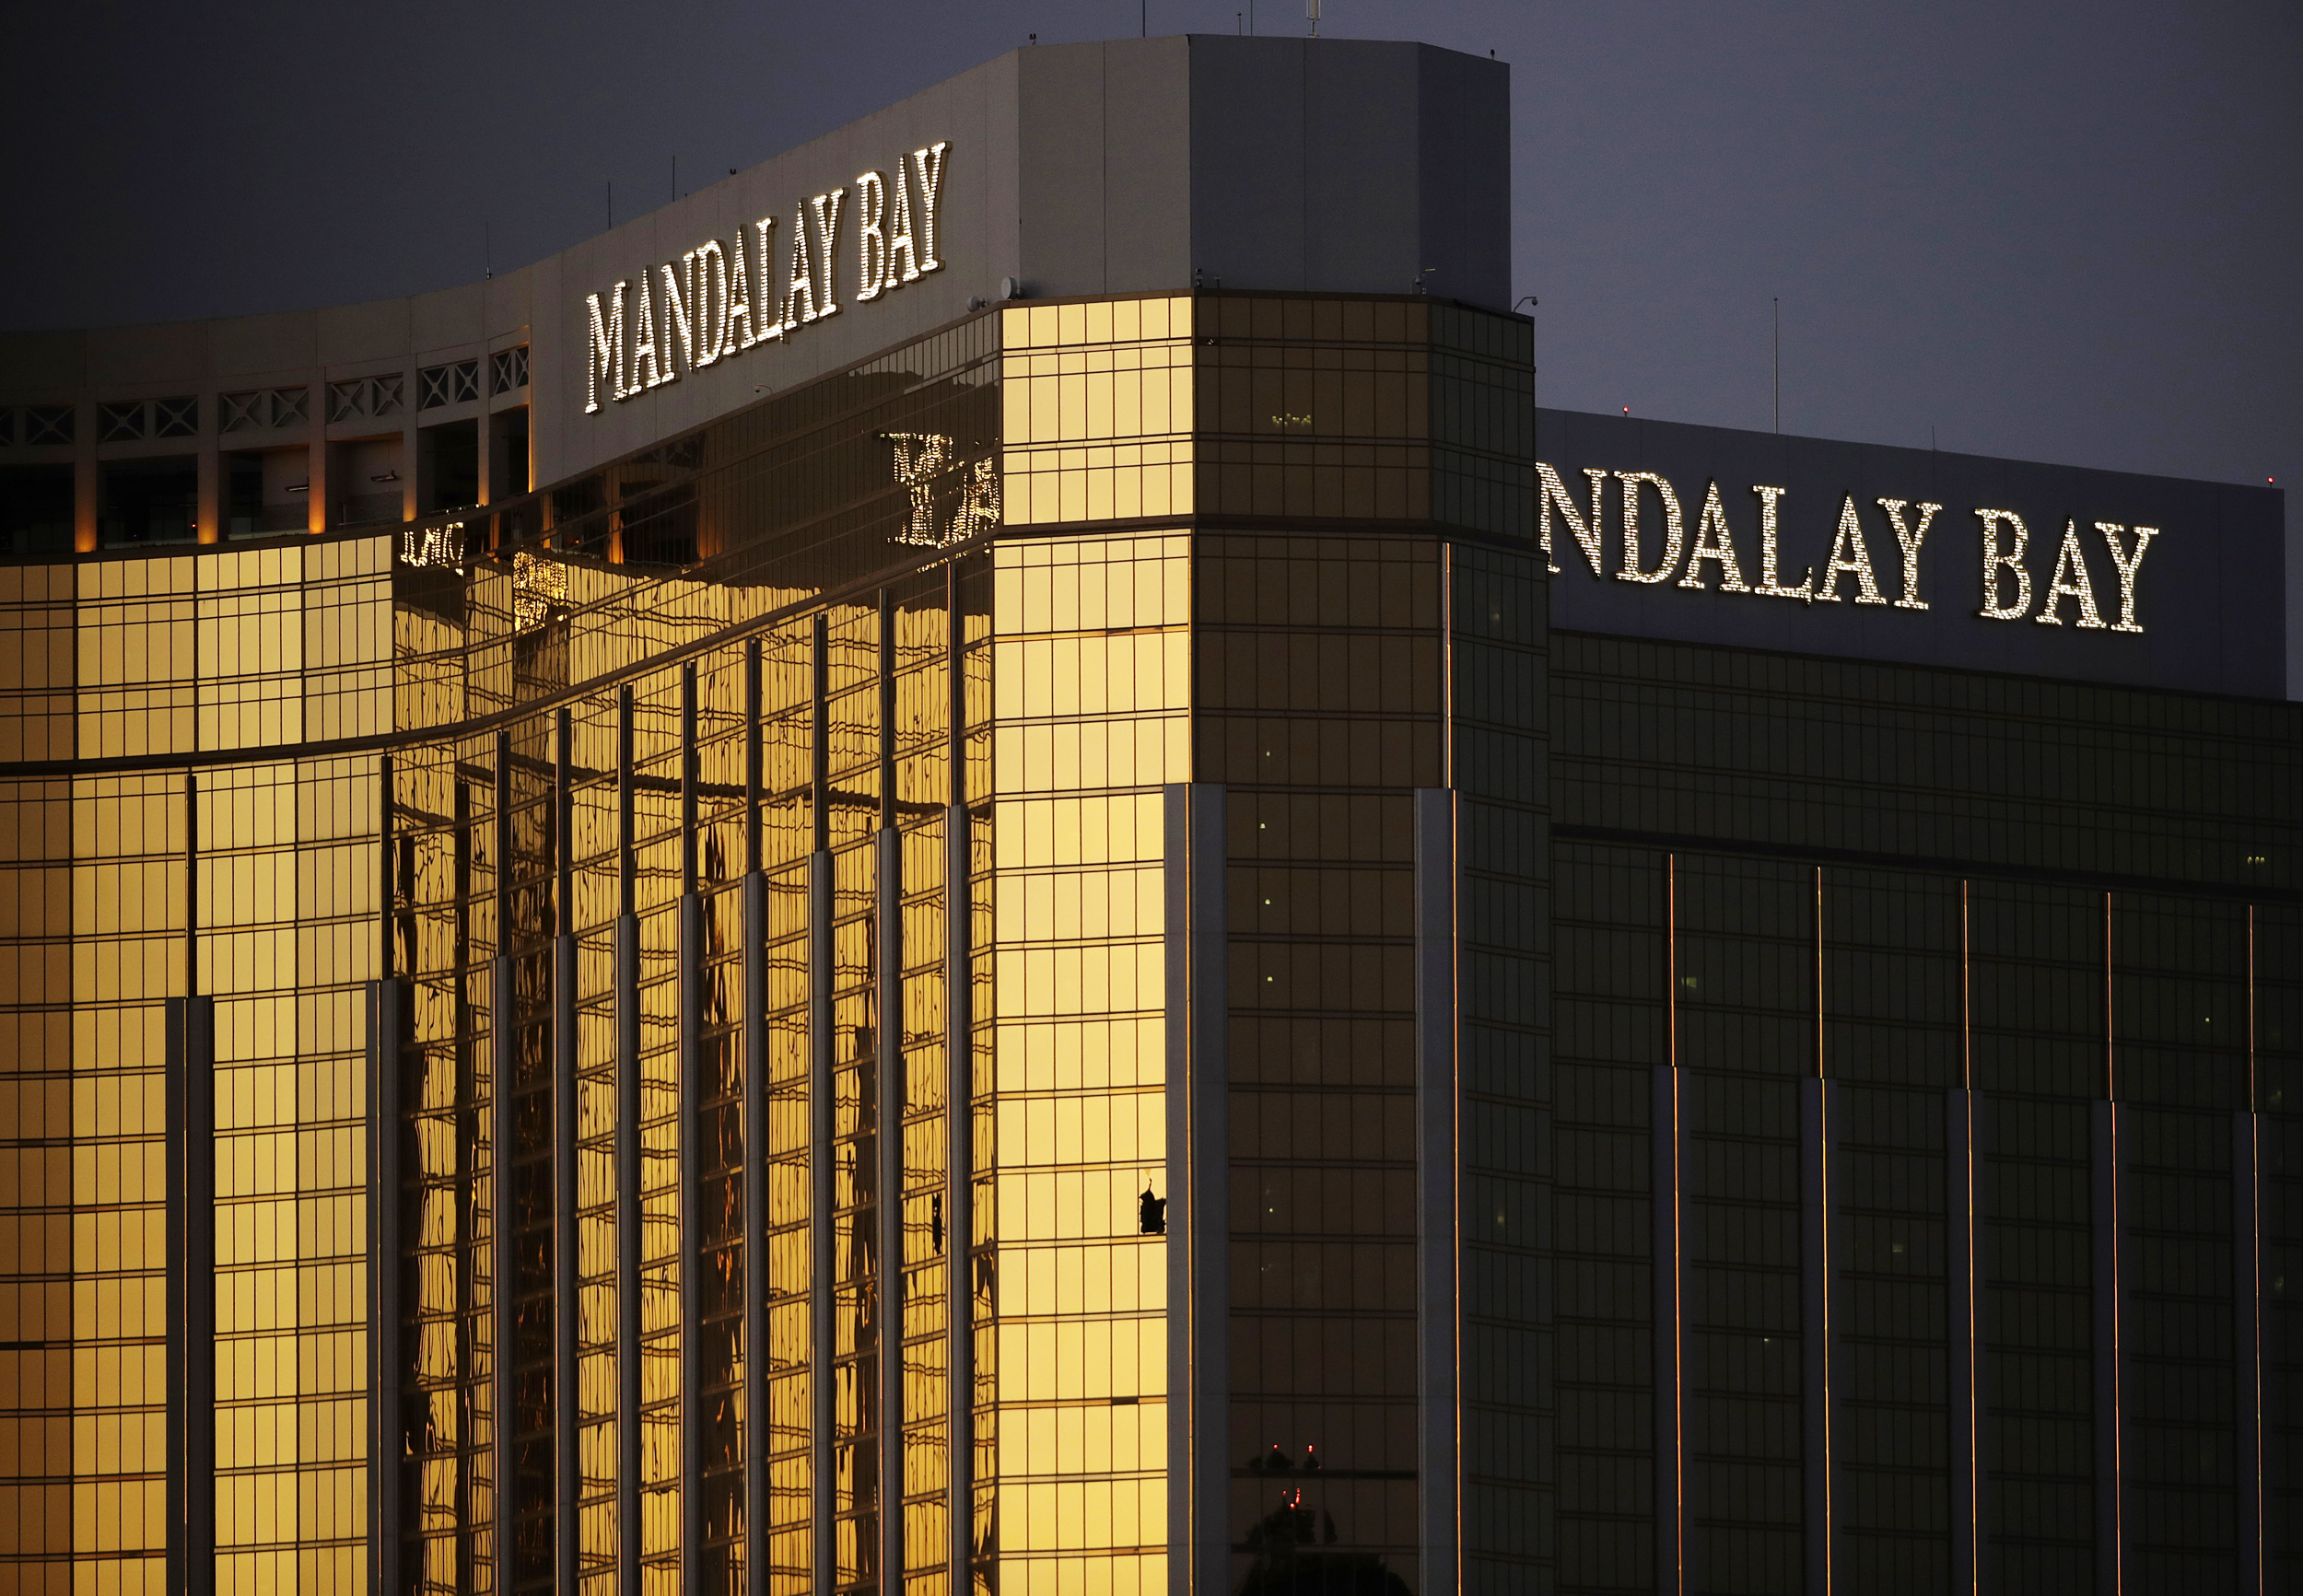 daed68f82be Arizona man who sold ammo to Las Vegas shooter Stephen Paddock is charged